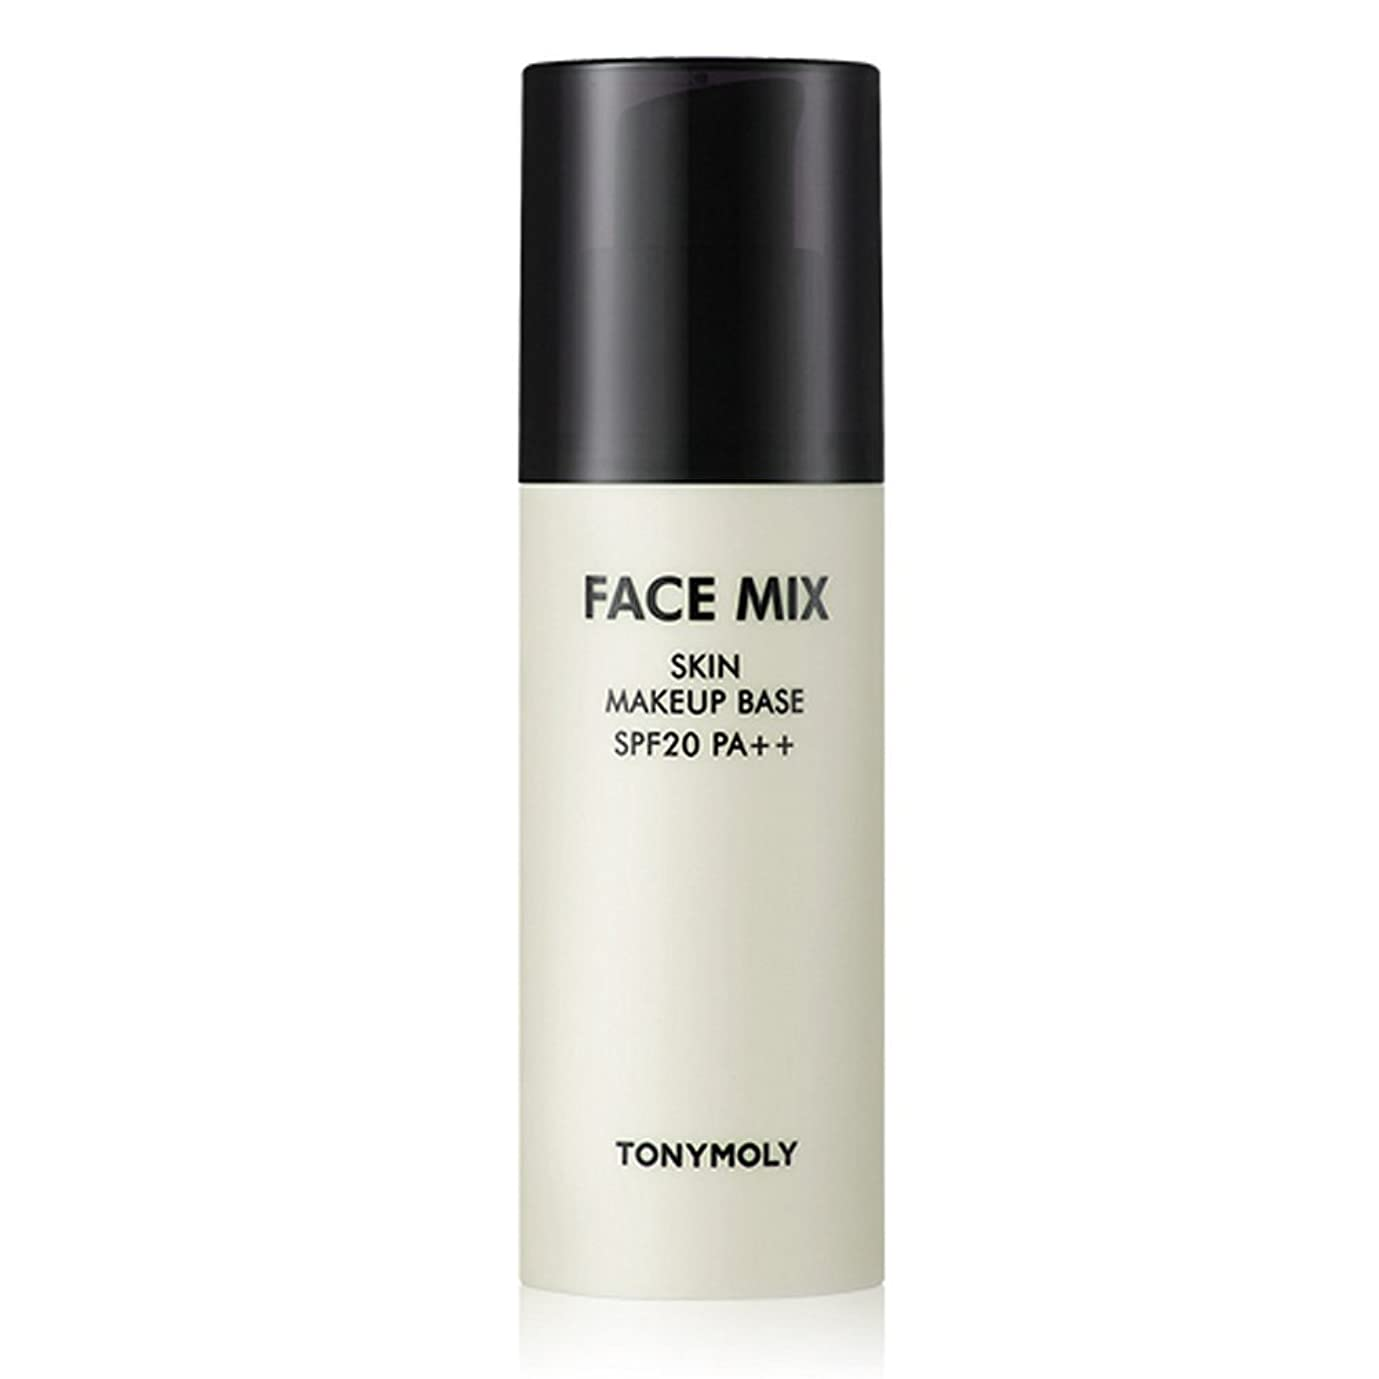 明るくする服を洗う手術TONYMOLY FACE MIX SKIN MAKEUP BASE 02 MIX LAVENDER SPF20 PA+++ 30g